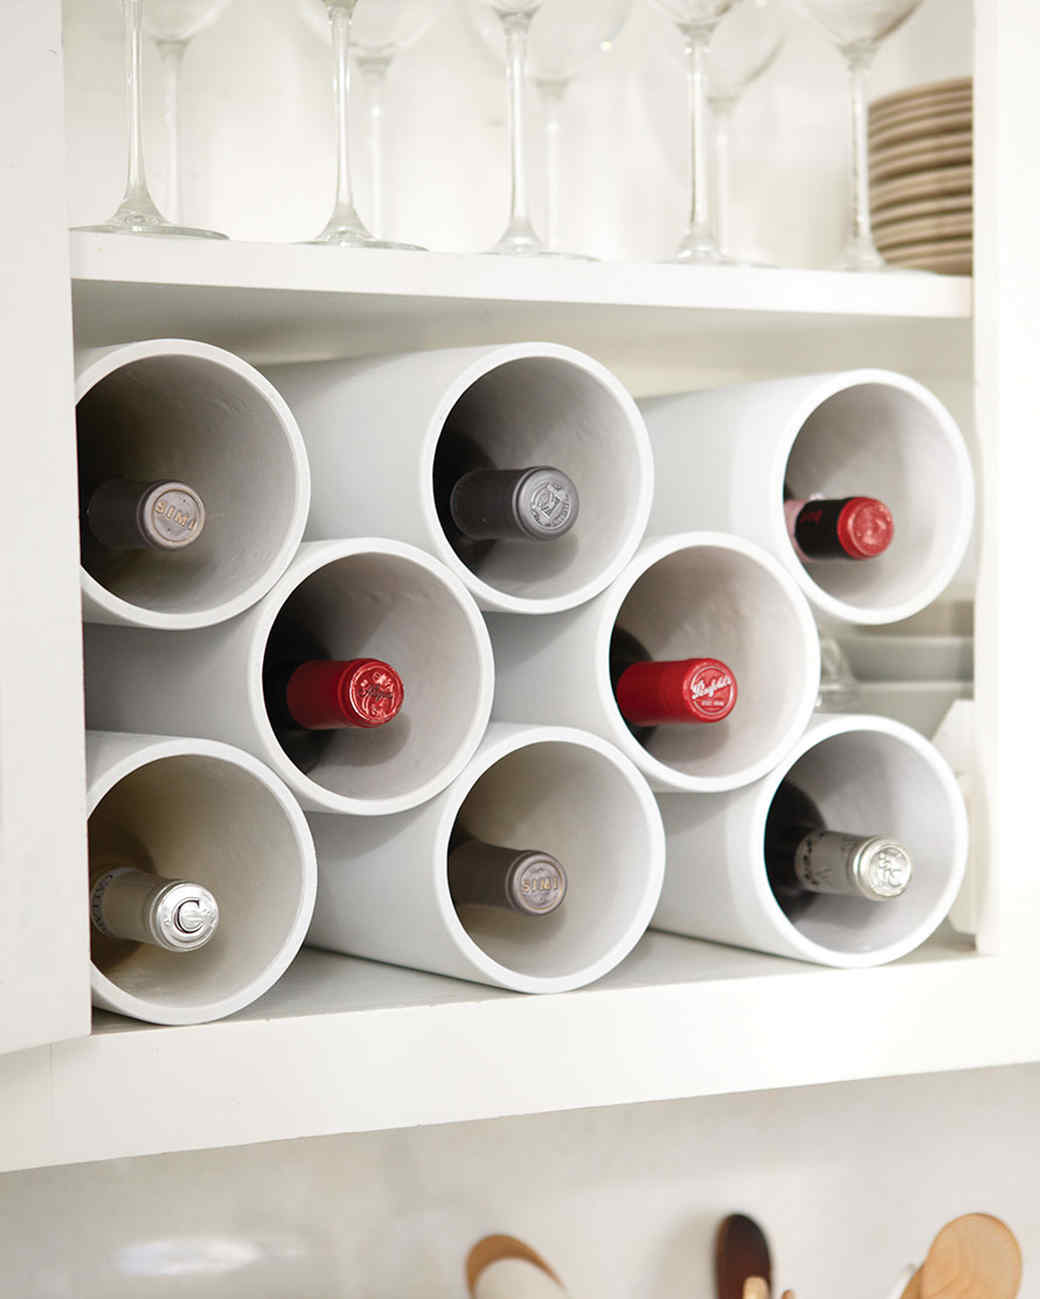 rck wonderful america amusing wineracksamerica about of diy ctchg remodel home plans coupon and wine remarkable lovely racks ok rw crfted fantastic fvourite interior rack